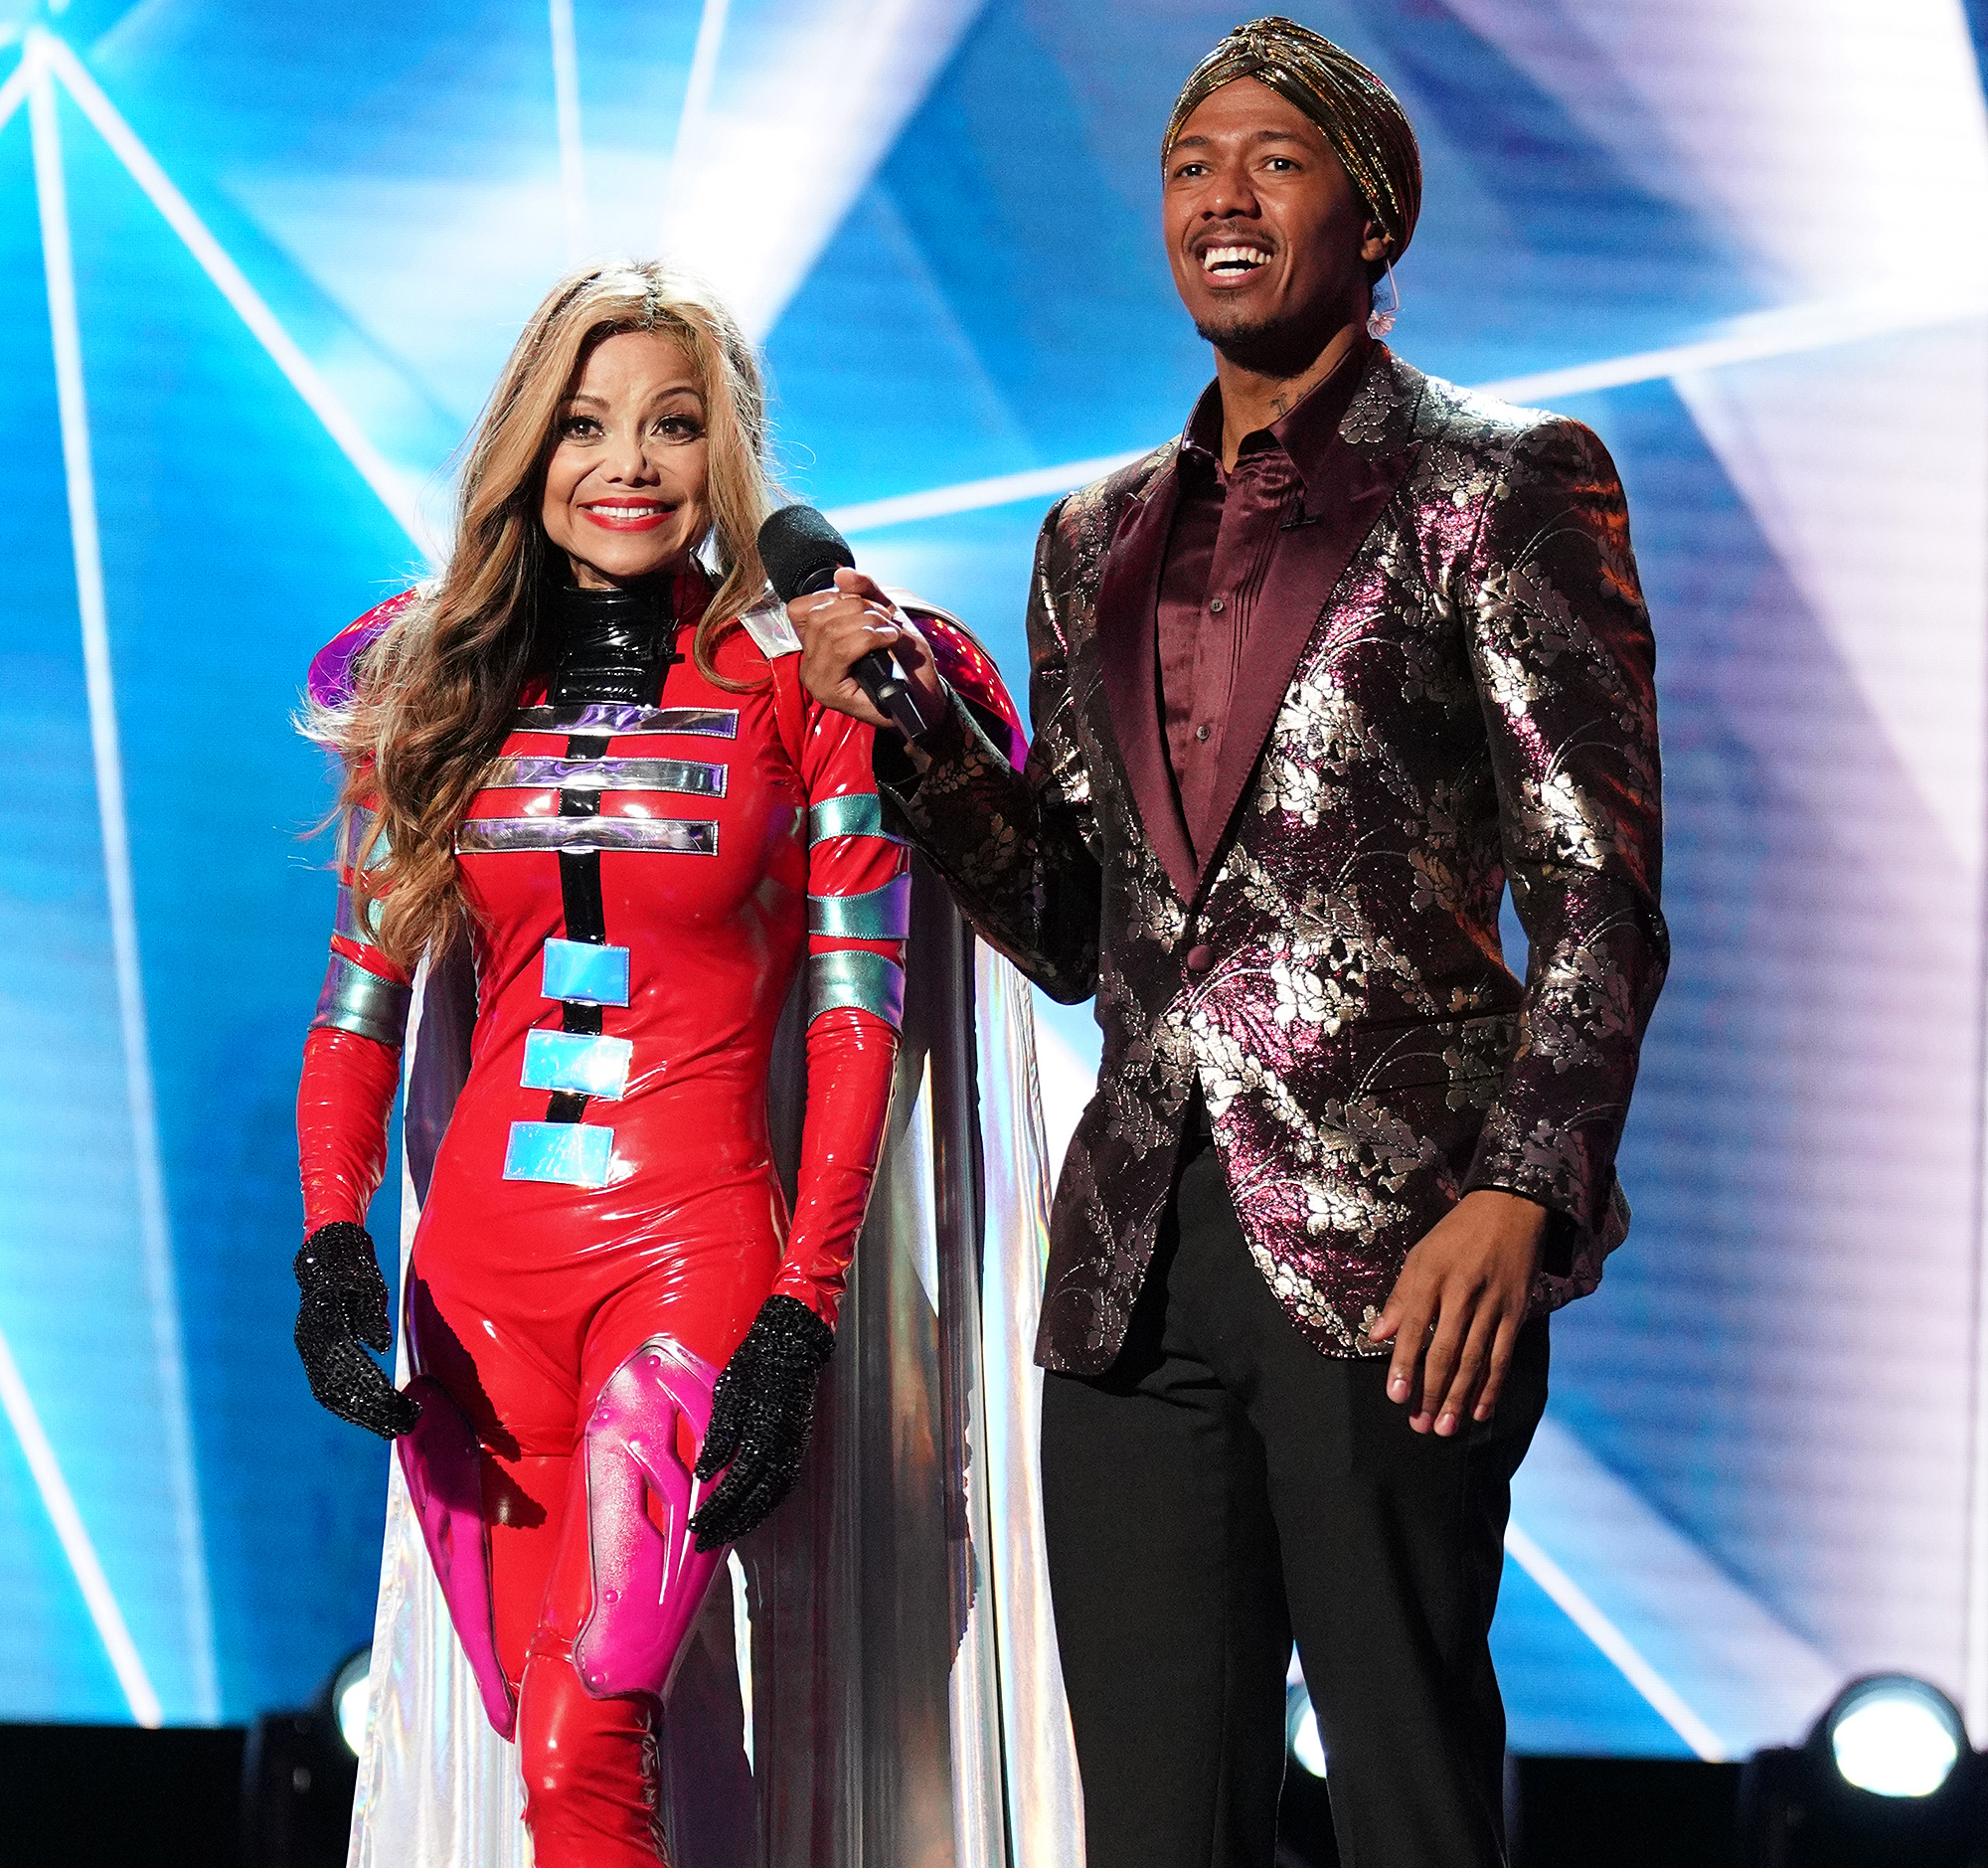 Nick Cannon To Remain Host Of Masked Singer After Apology